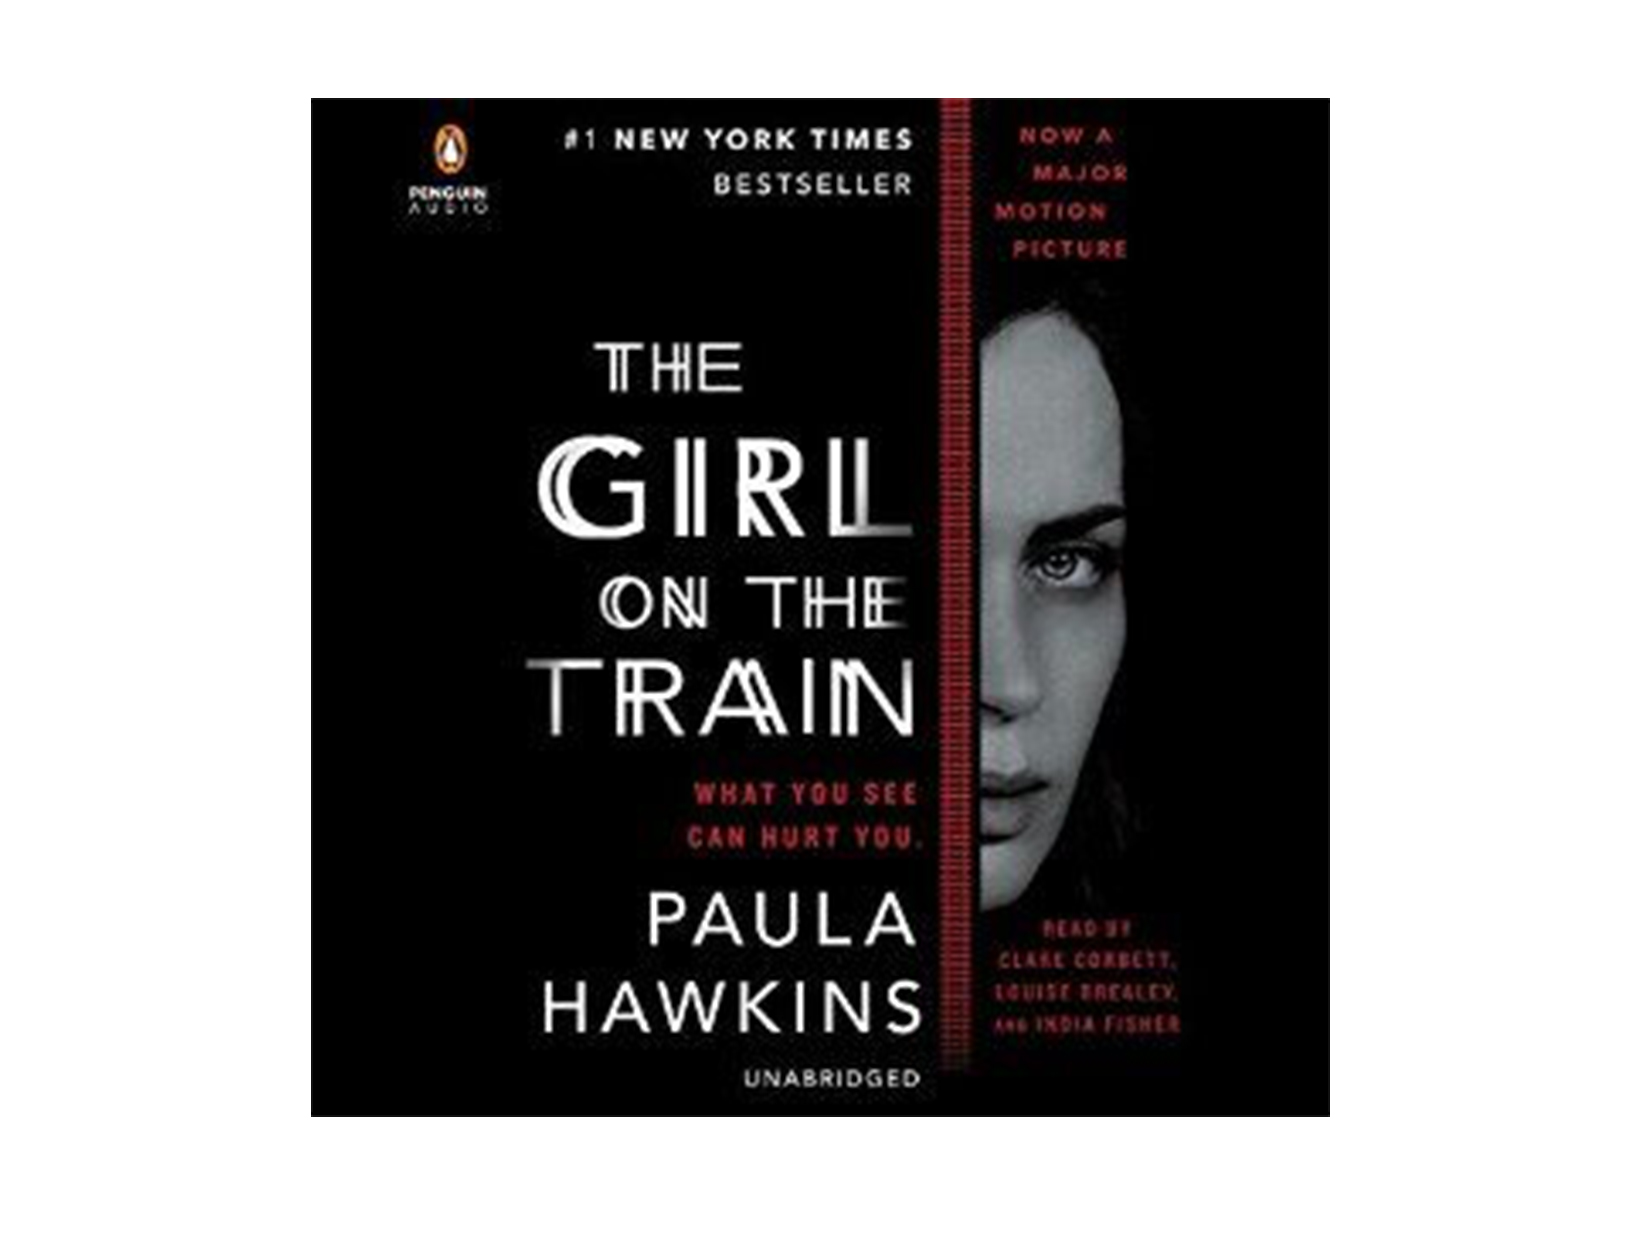 The Girl on the Train by Paula Hawkins, read by Clare Corbett, Louise Brealey, & India Fisher